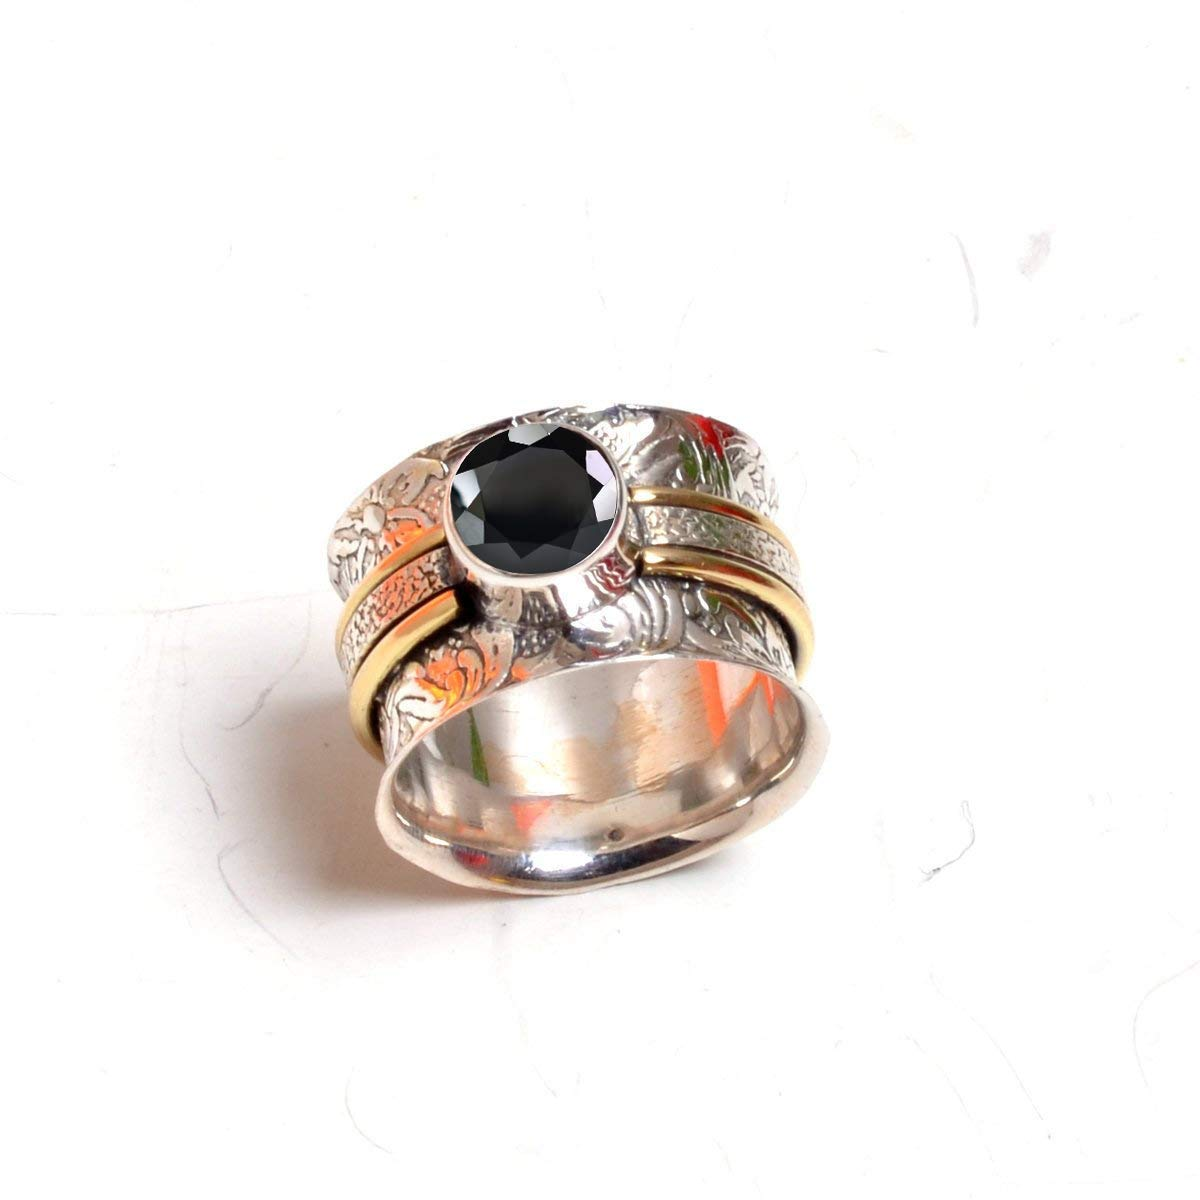 Thumb Spinner Ring 925 Sterling Silver Meditation Anxiety Handmade Band Jewelry